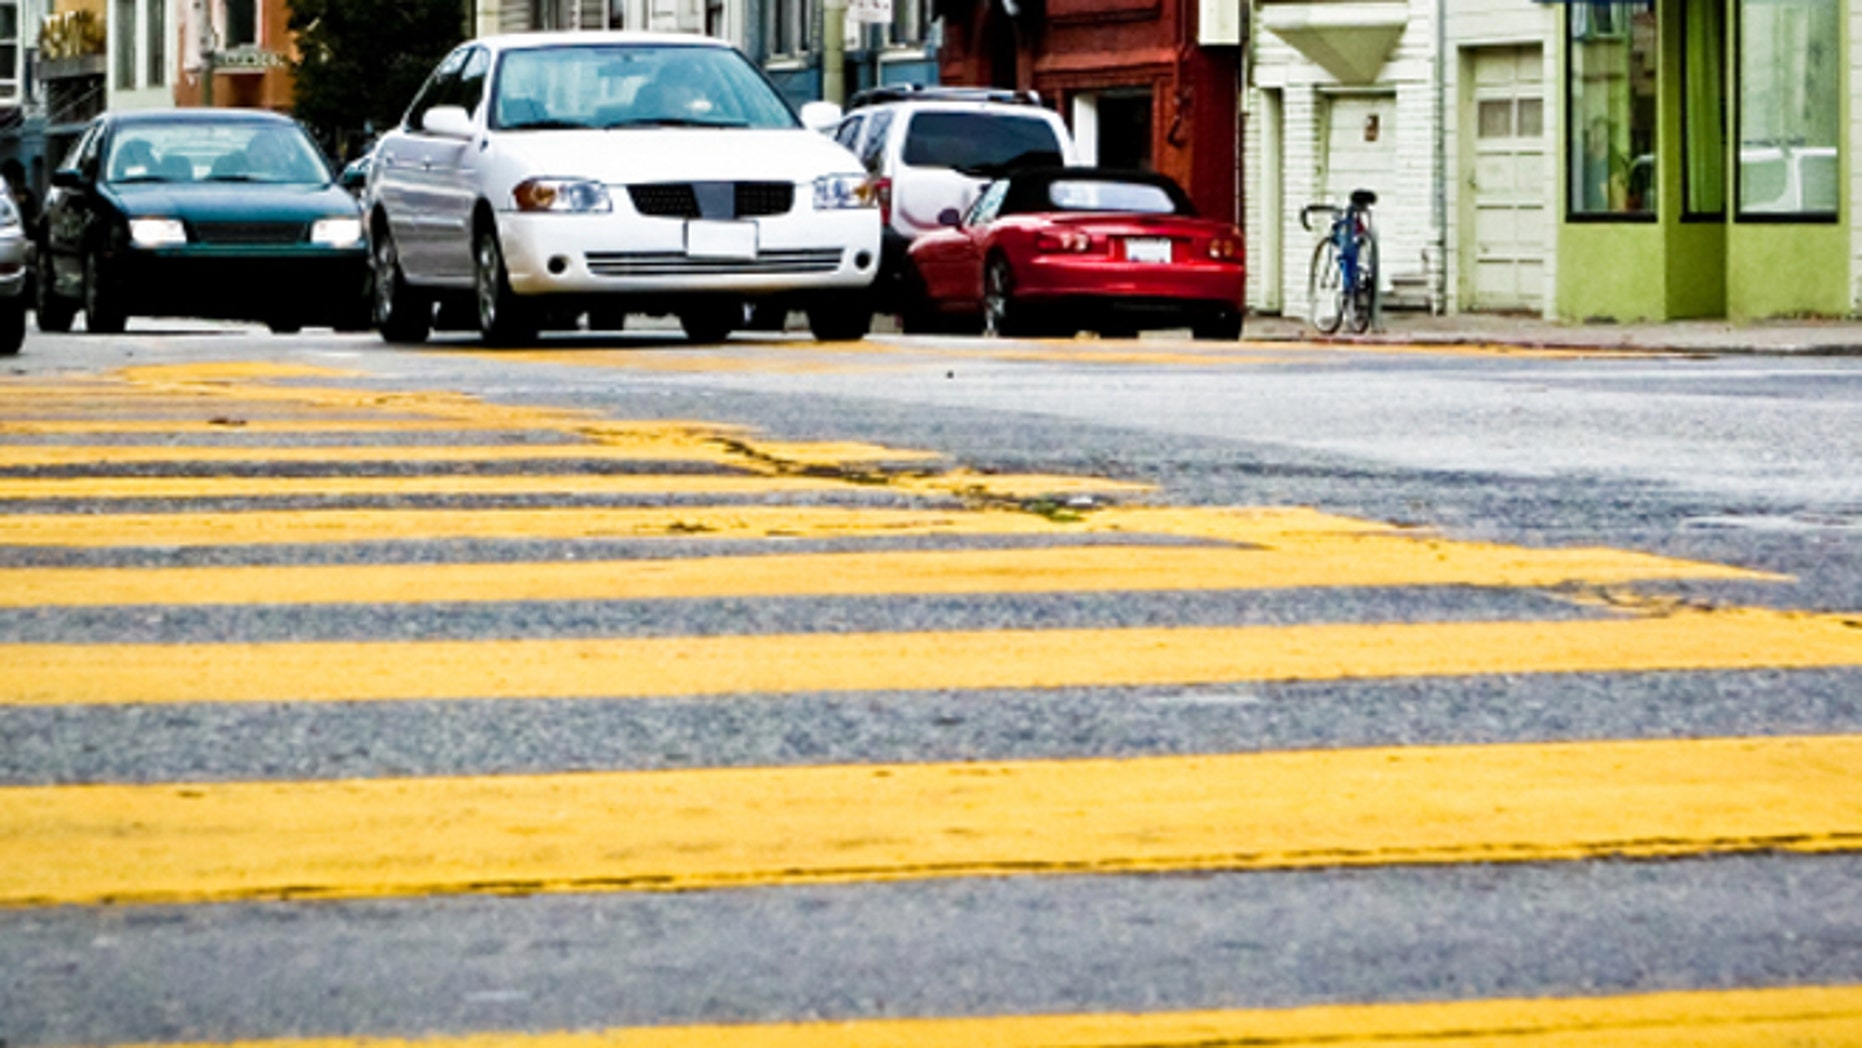 San Francisco wants to clean up its city streets.